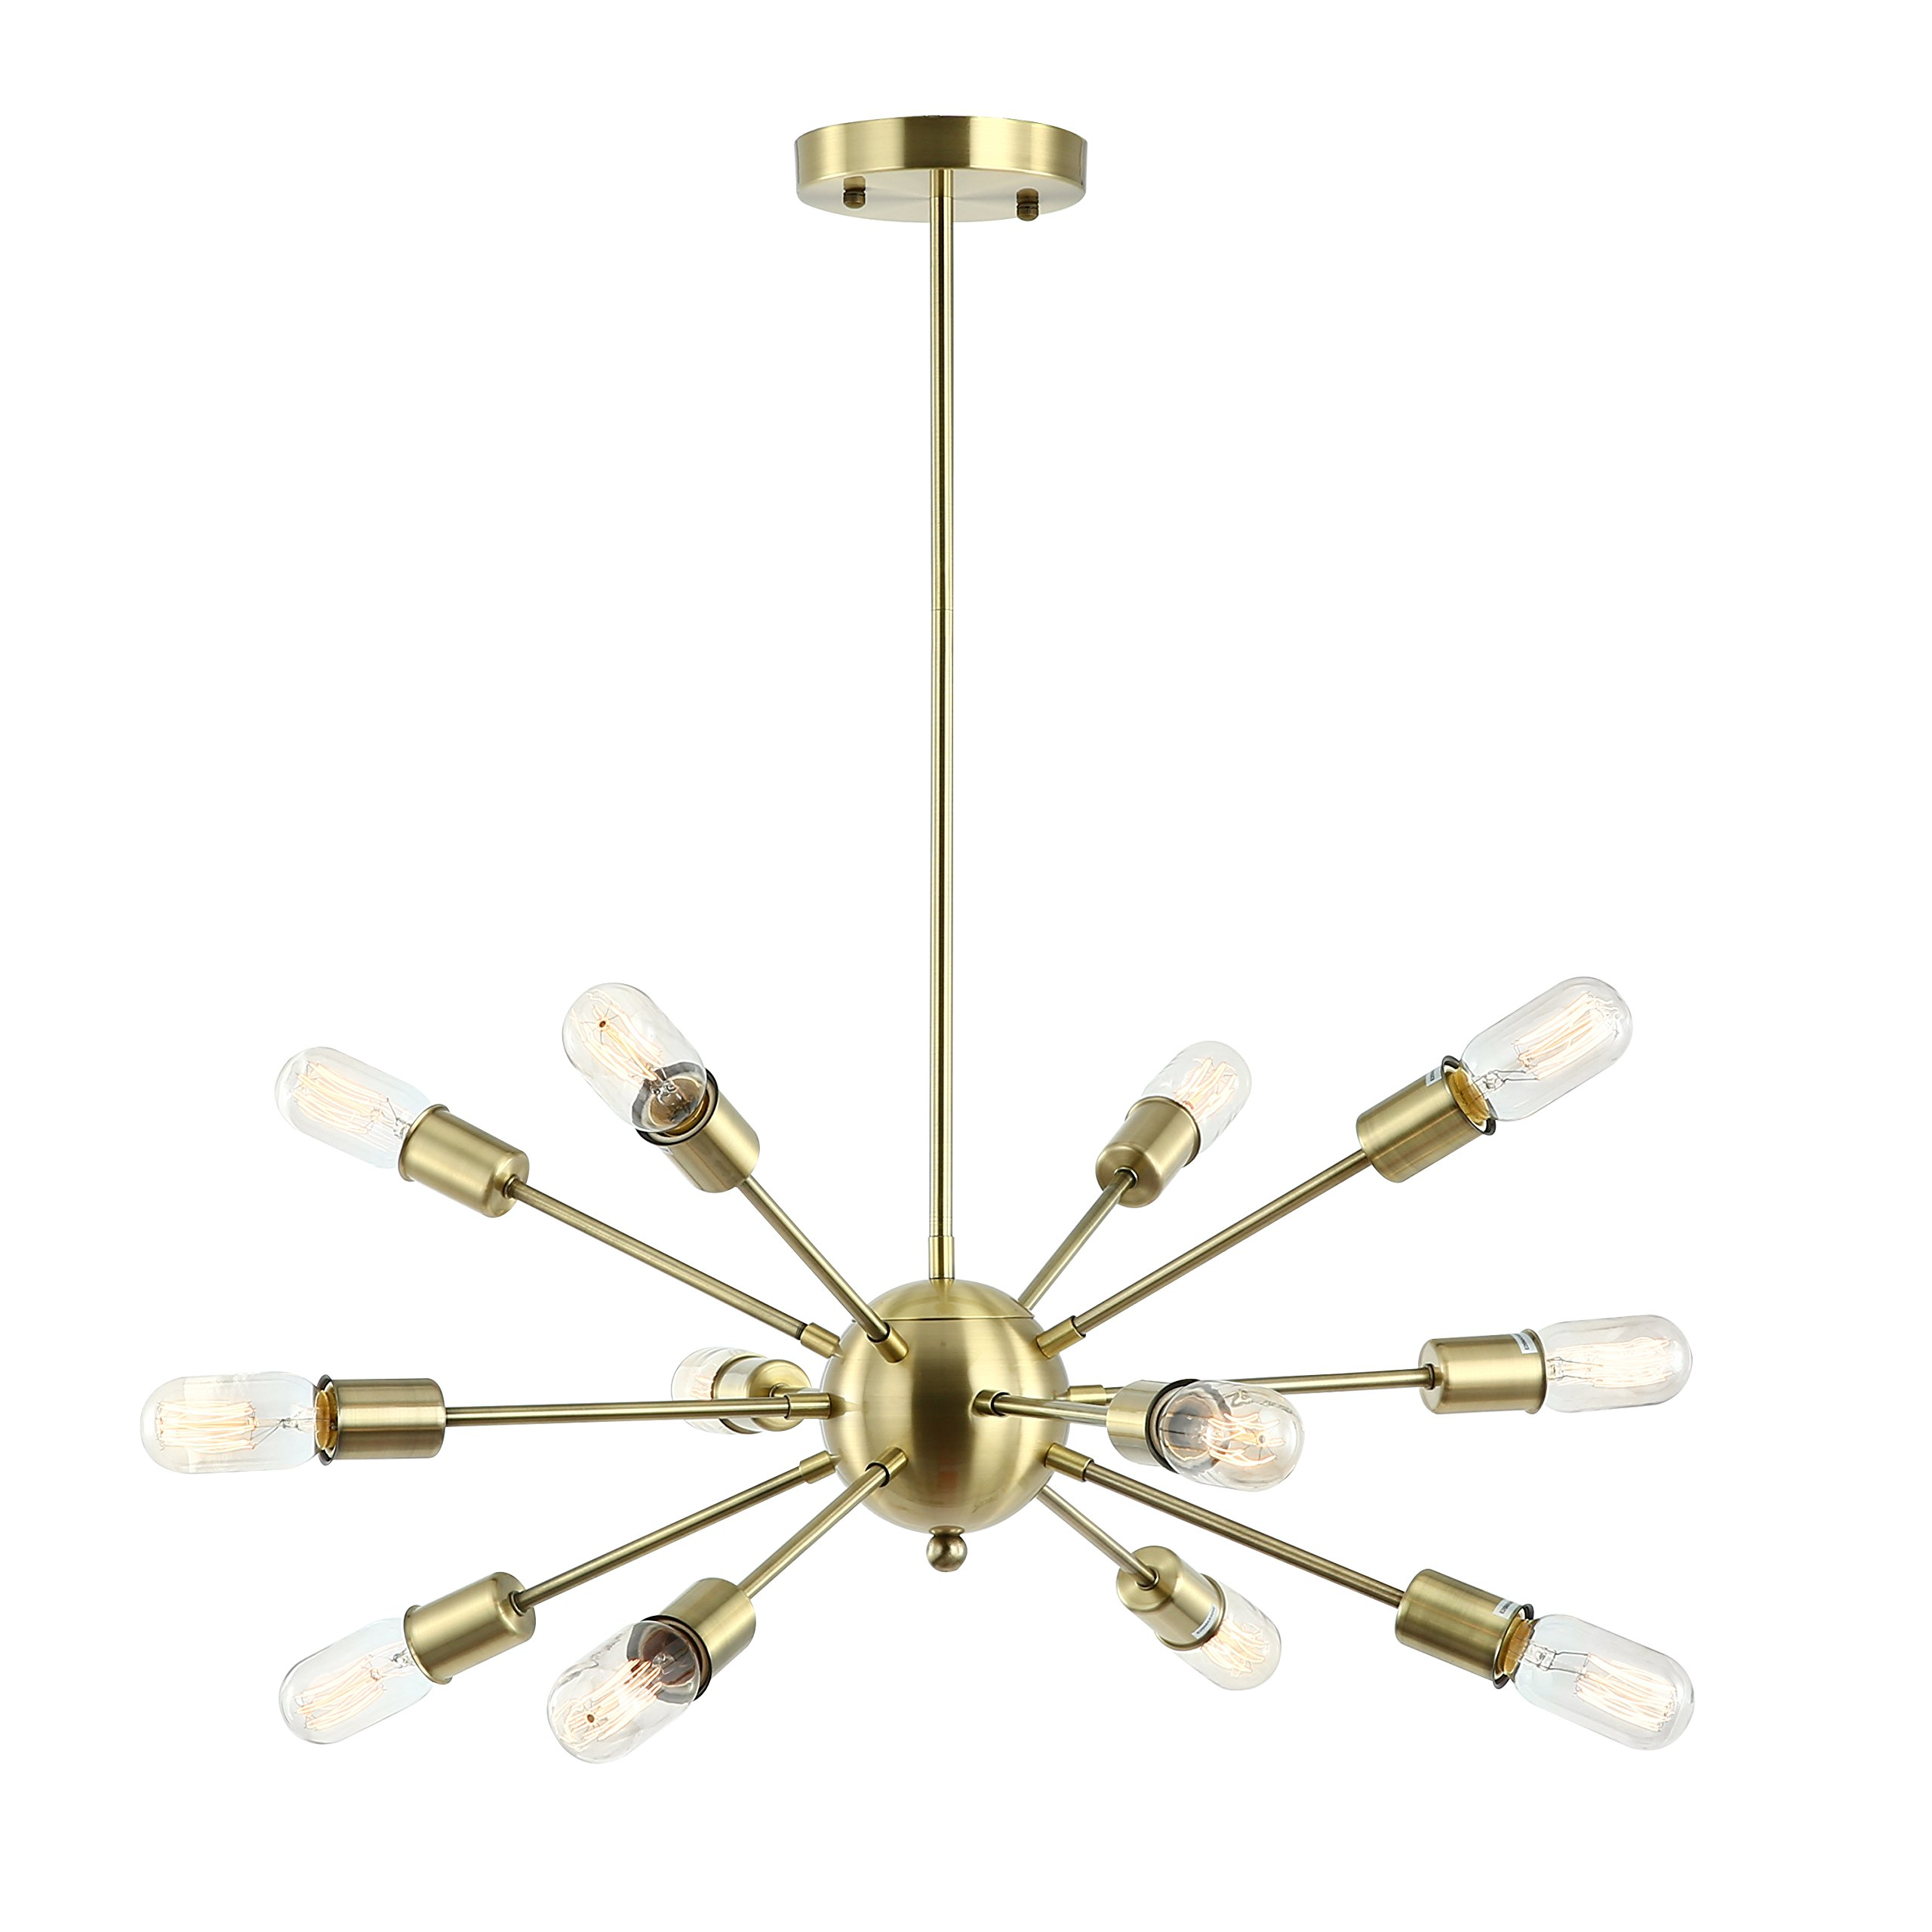 Light Society Meridia Sputnik 12-Light Chandelier Pendant, Brushed Brass, Mid Century Modern Industrial Starburst-Style Lighting Fixture (LS-C172-BRS) by Light Society (Image #1)